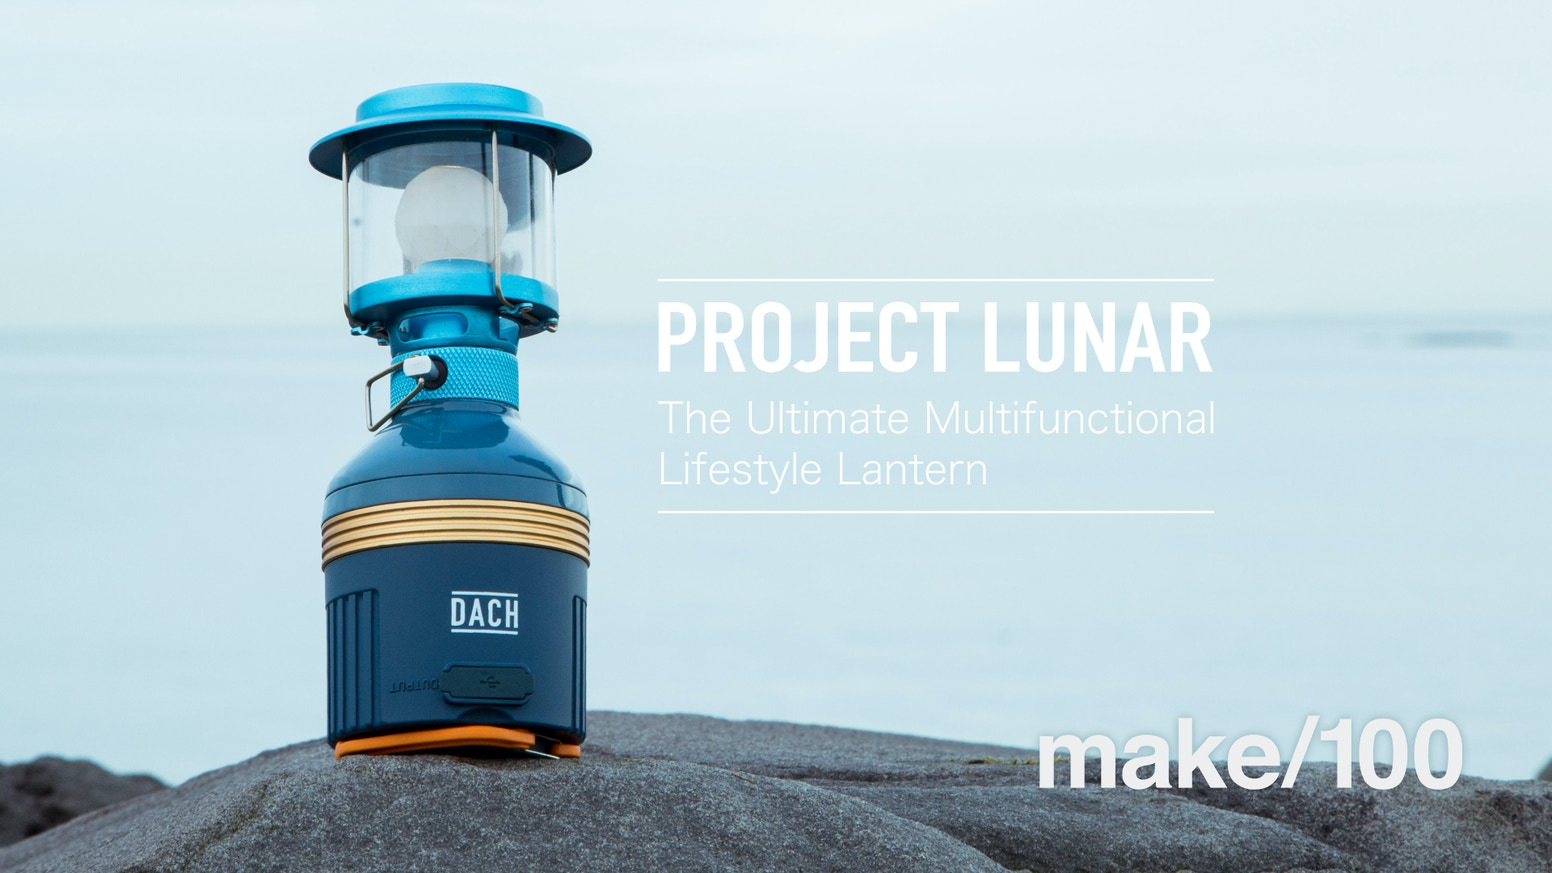 Project Lunarthe Ultimate Multifunctional Lifestyle Lantern By Dach